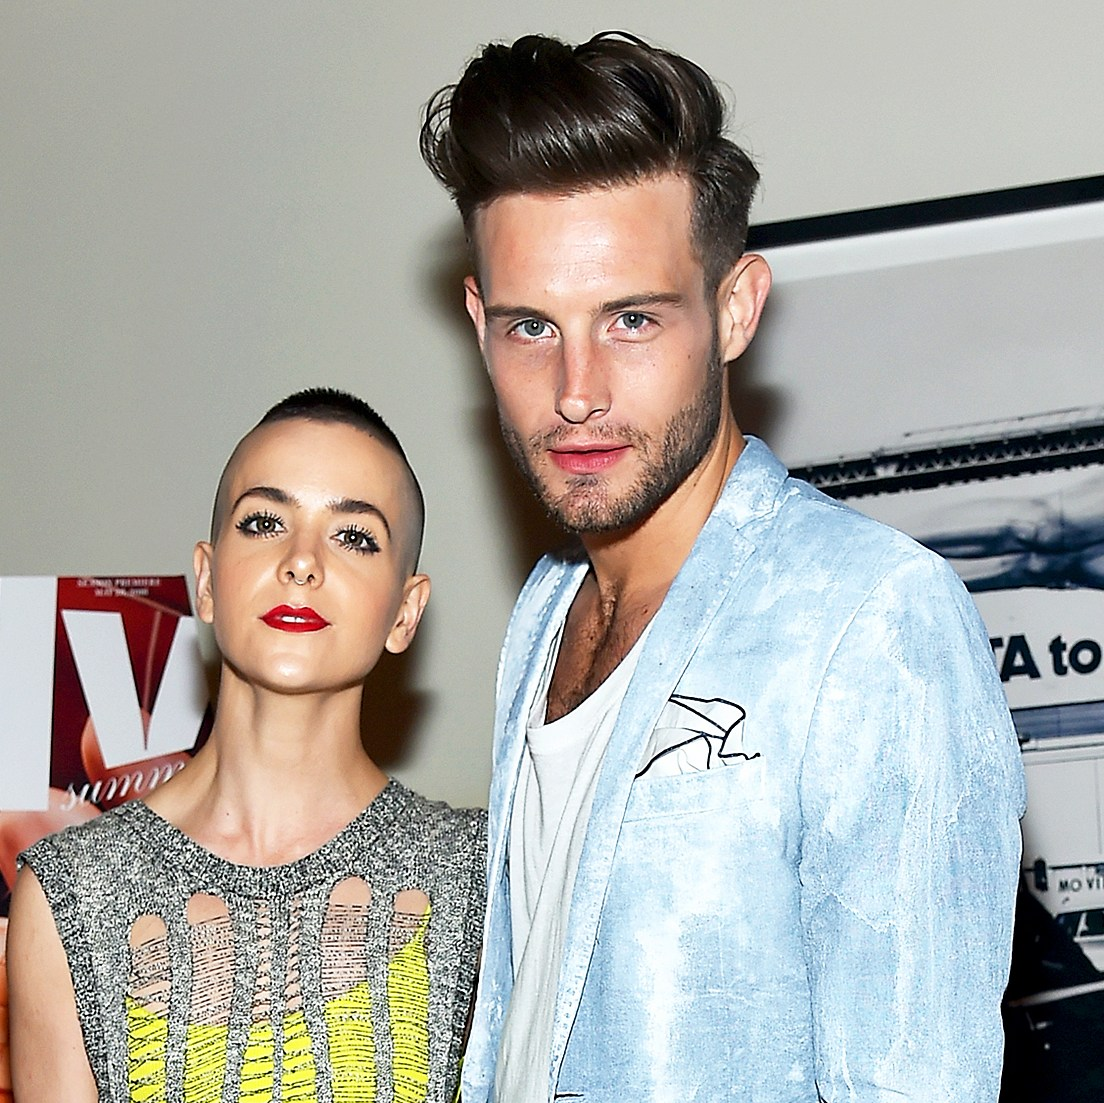 Bethany Meyers and Nico Tortorella attend the The Daily's Summer premiere party at the Smyth Hotel in New York City.